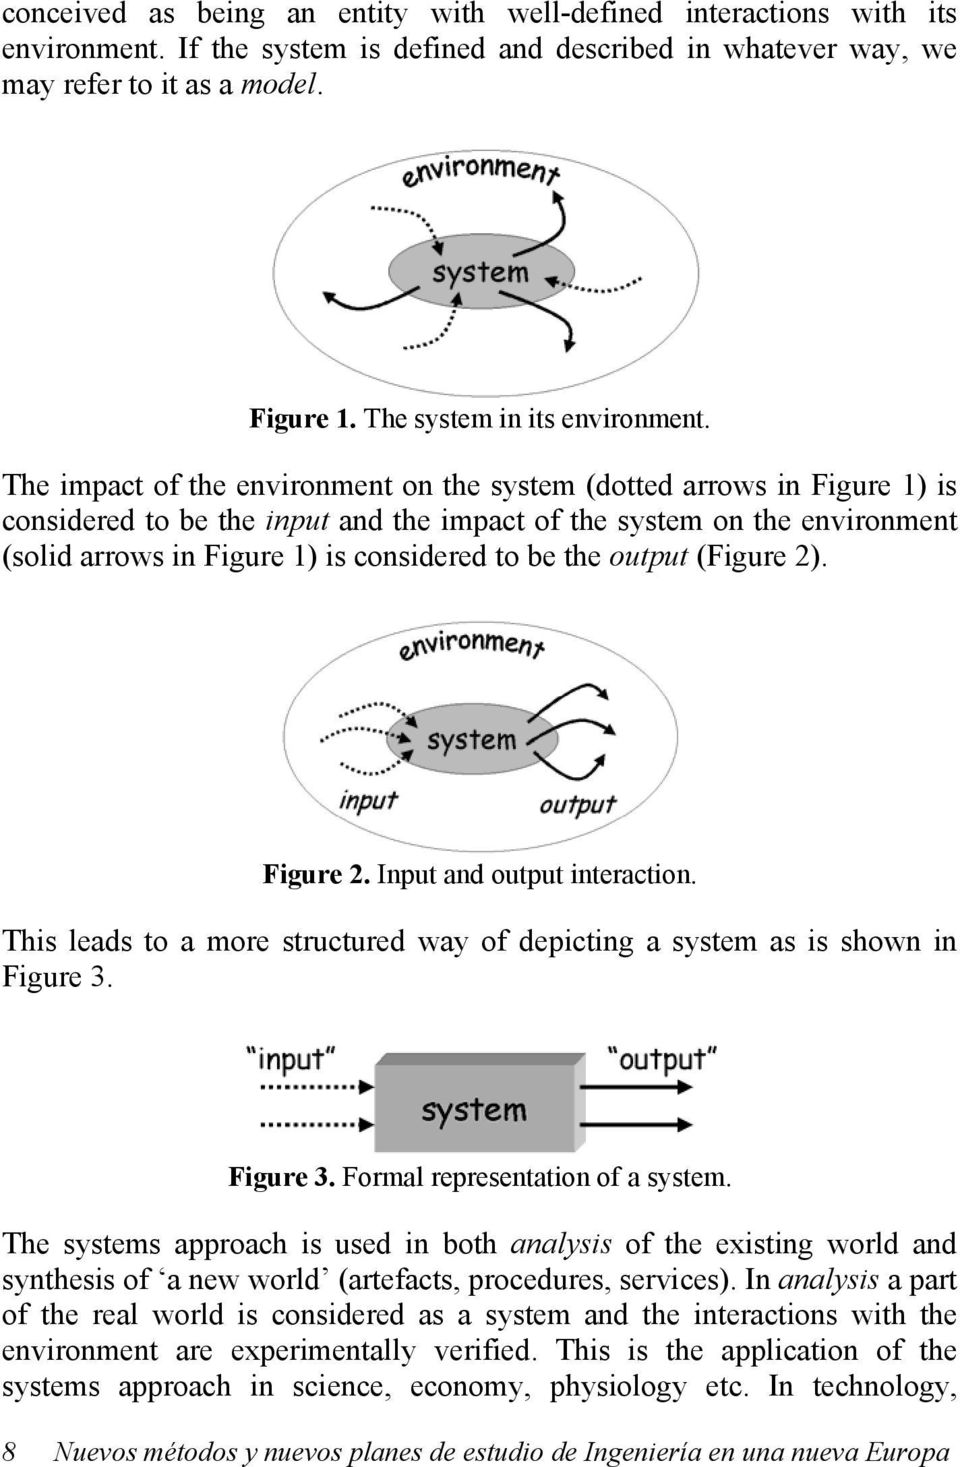 The impact of the environment on the system (dotted arrows in Figure 1) is considered to be the input and the impact of the system on the environment (solid arrows in Figure 1) is considered to be